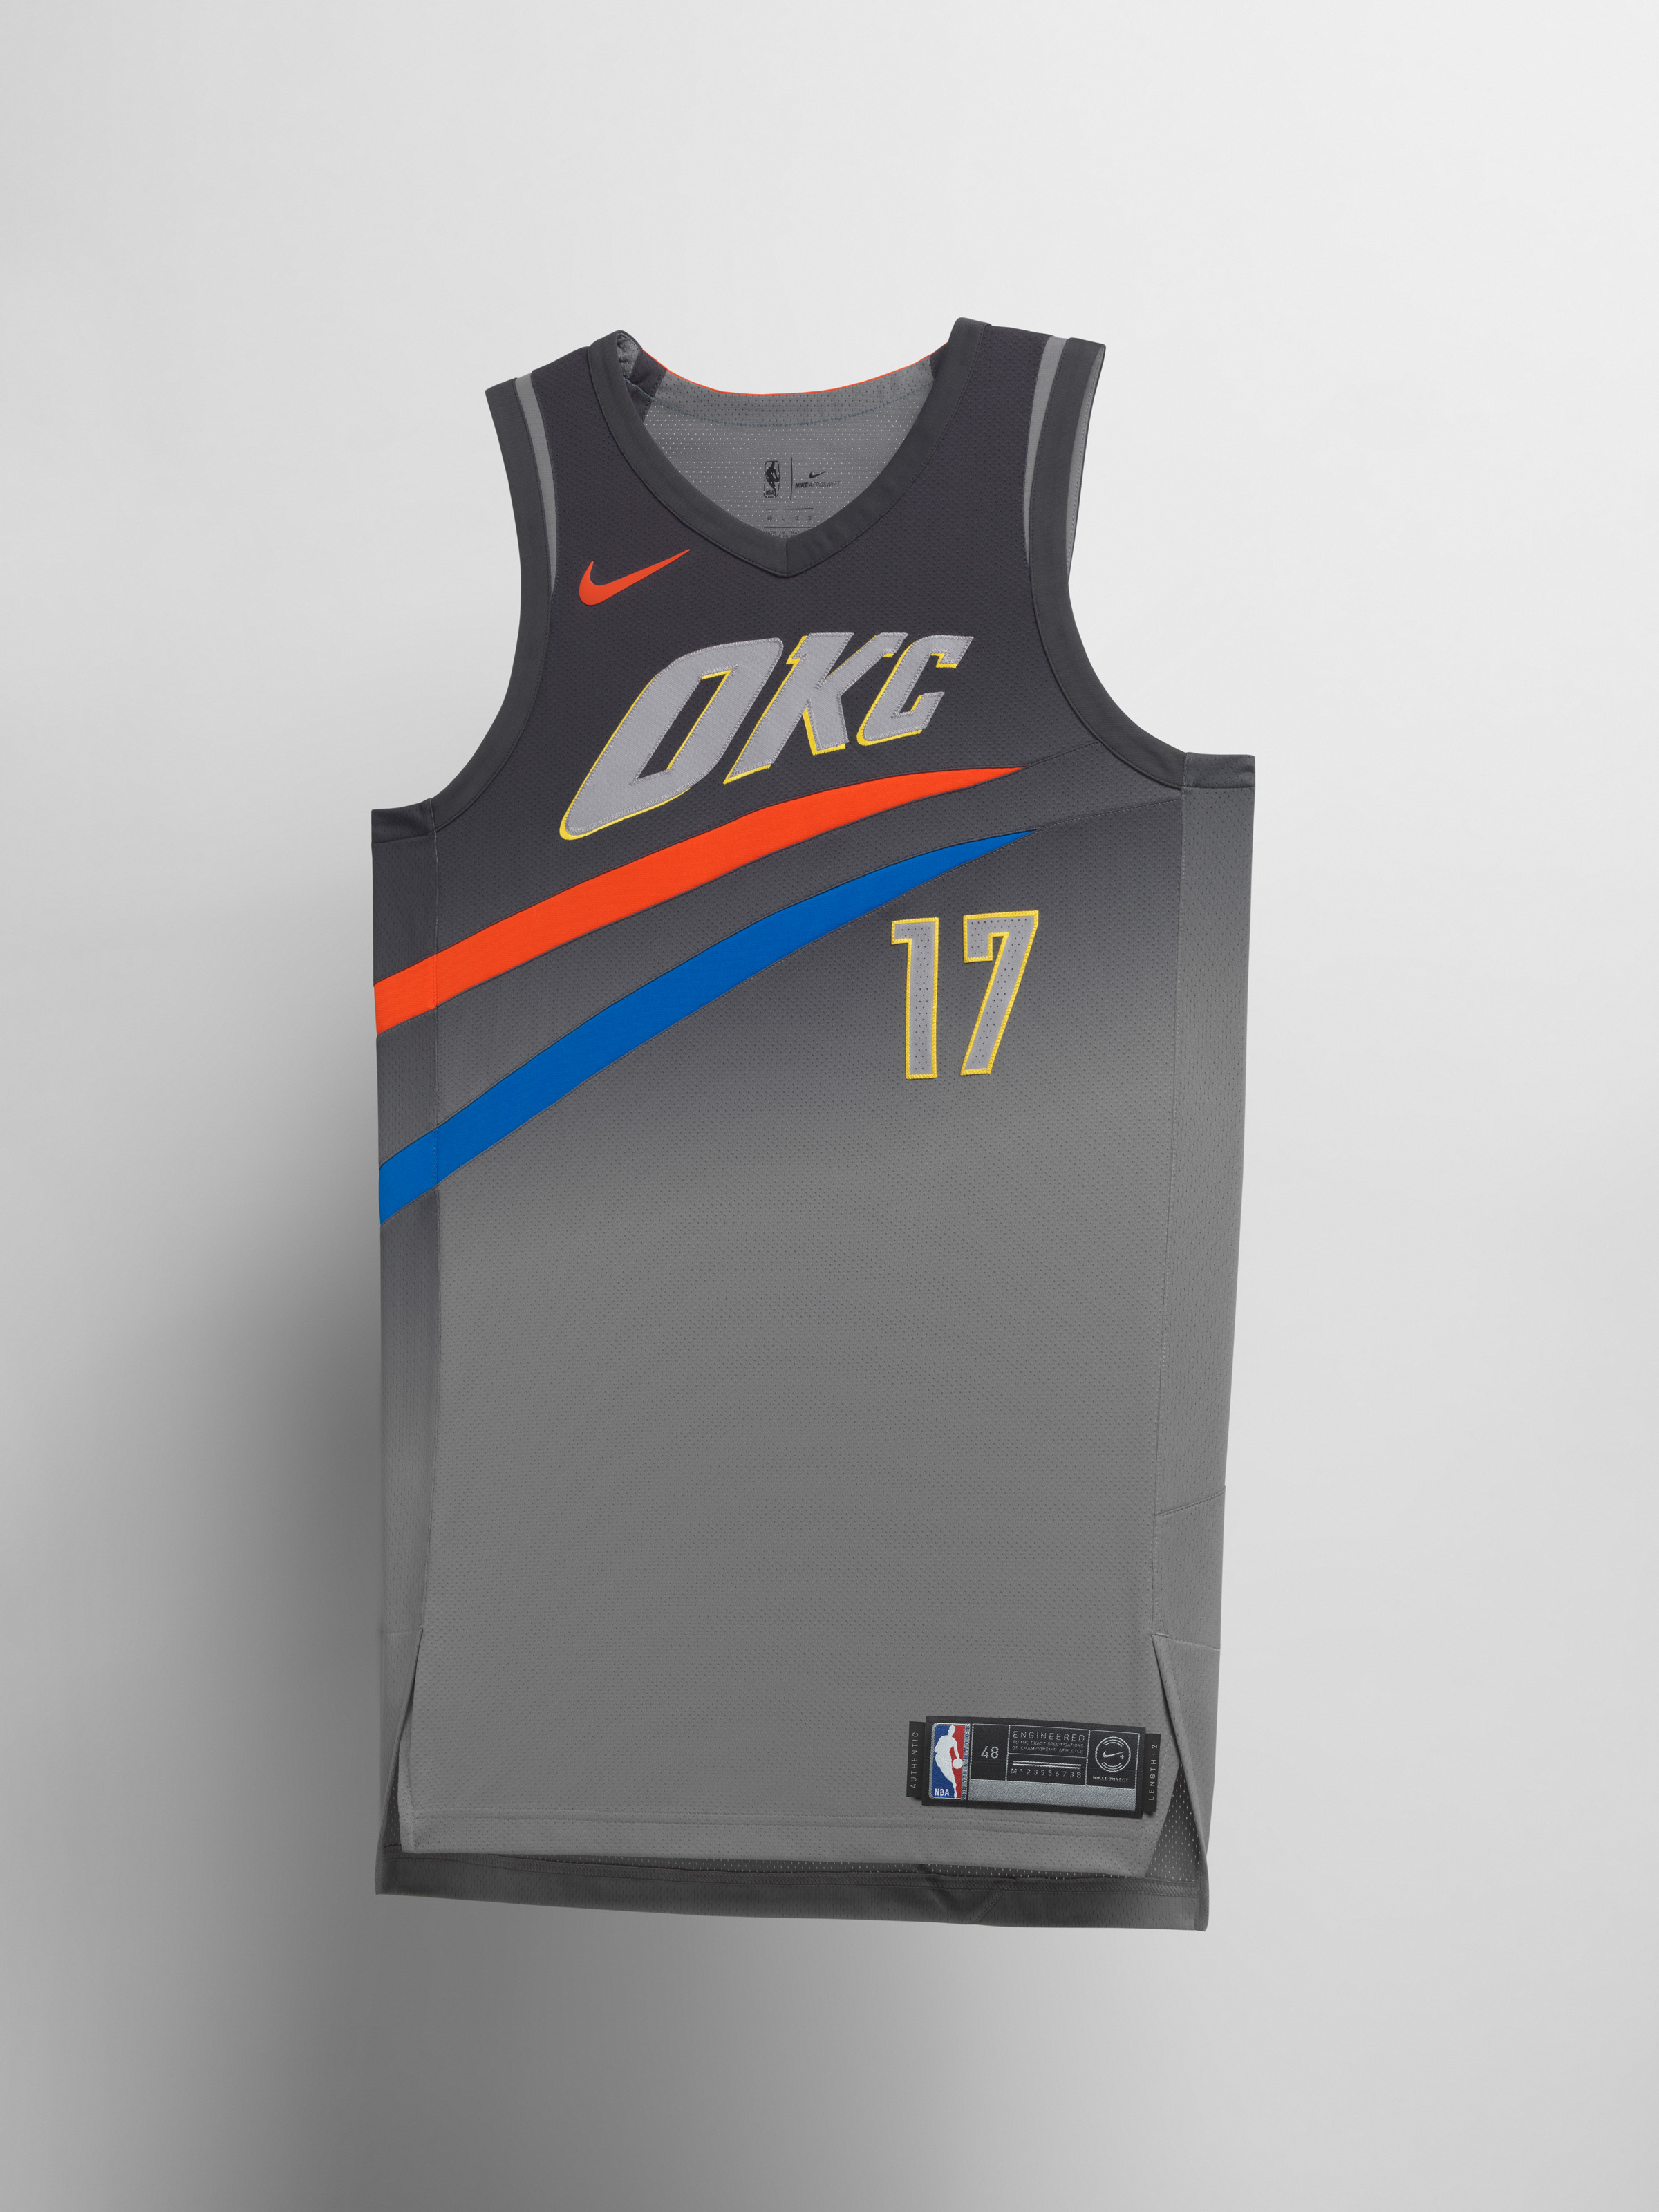 85c3f0d98 Nike unveils City Edition uniforms for 26 NBA teams